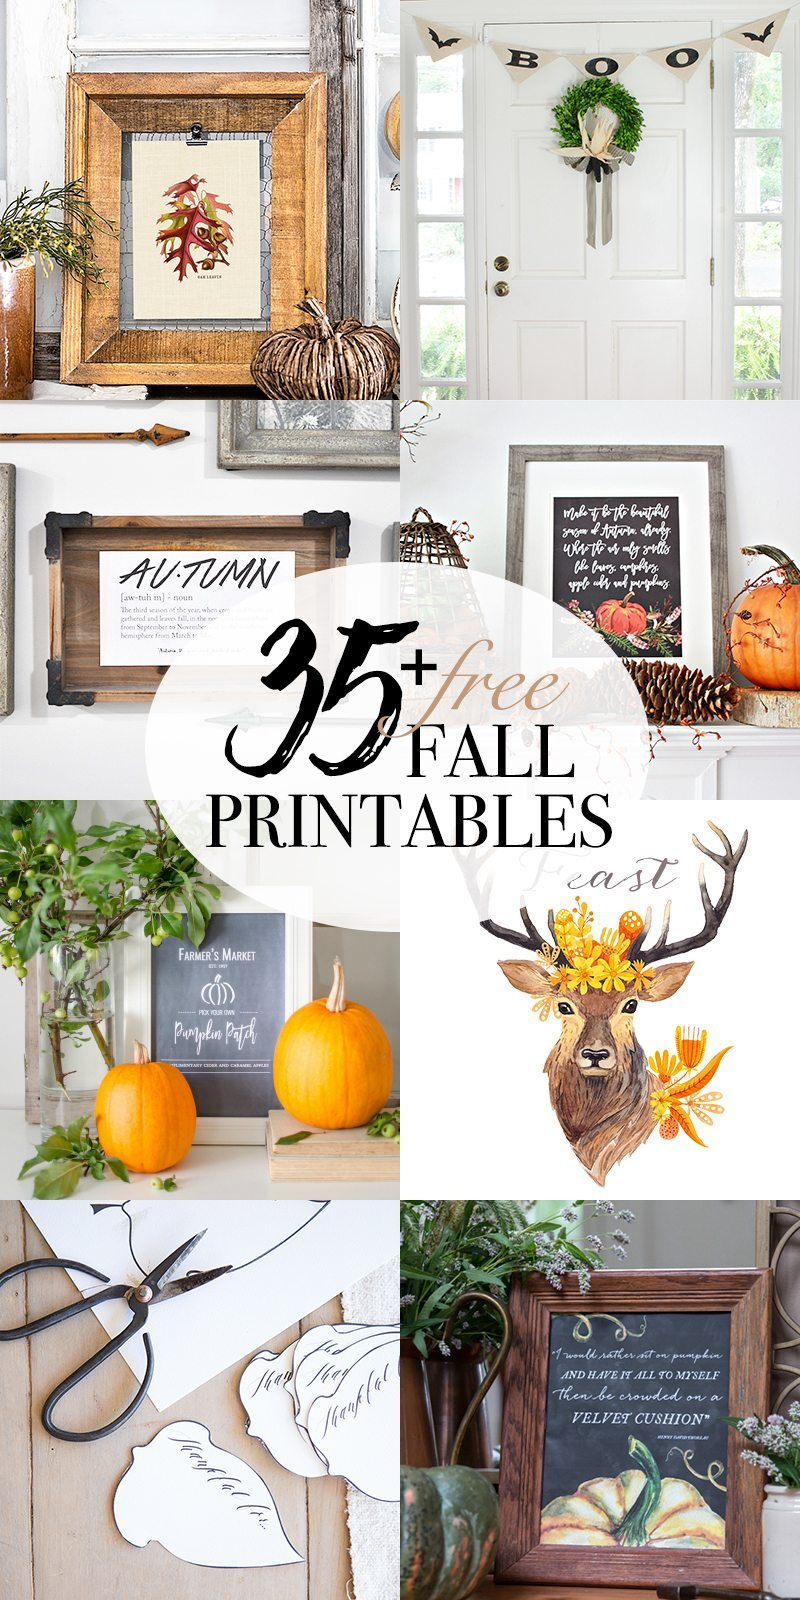 35-free-printables-at-Refresh-Restyle